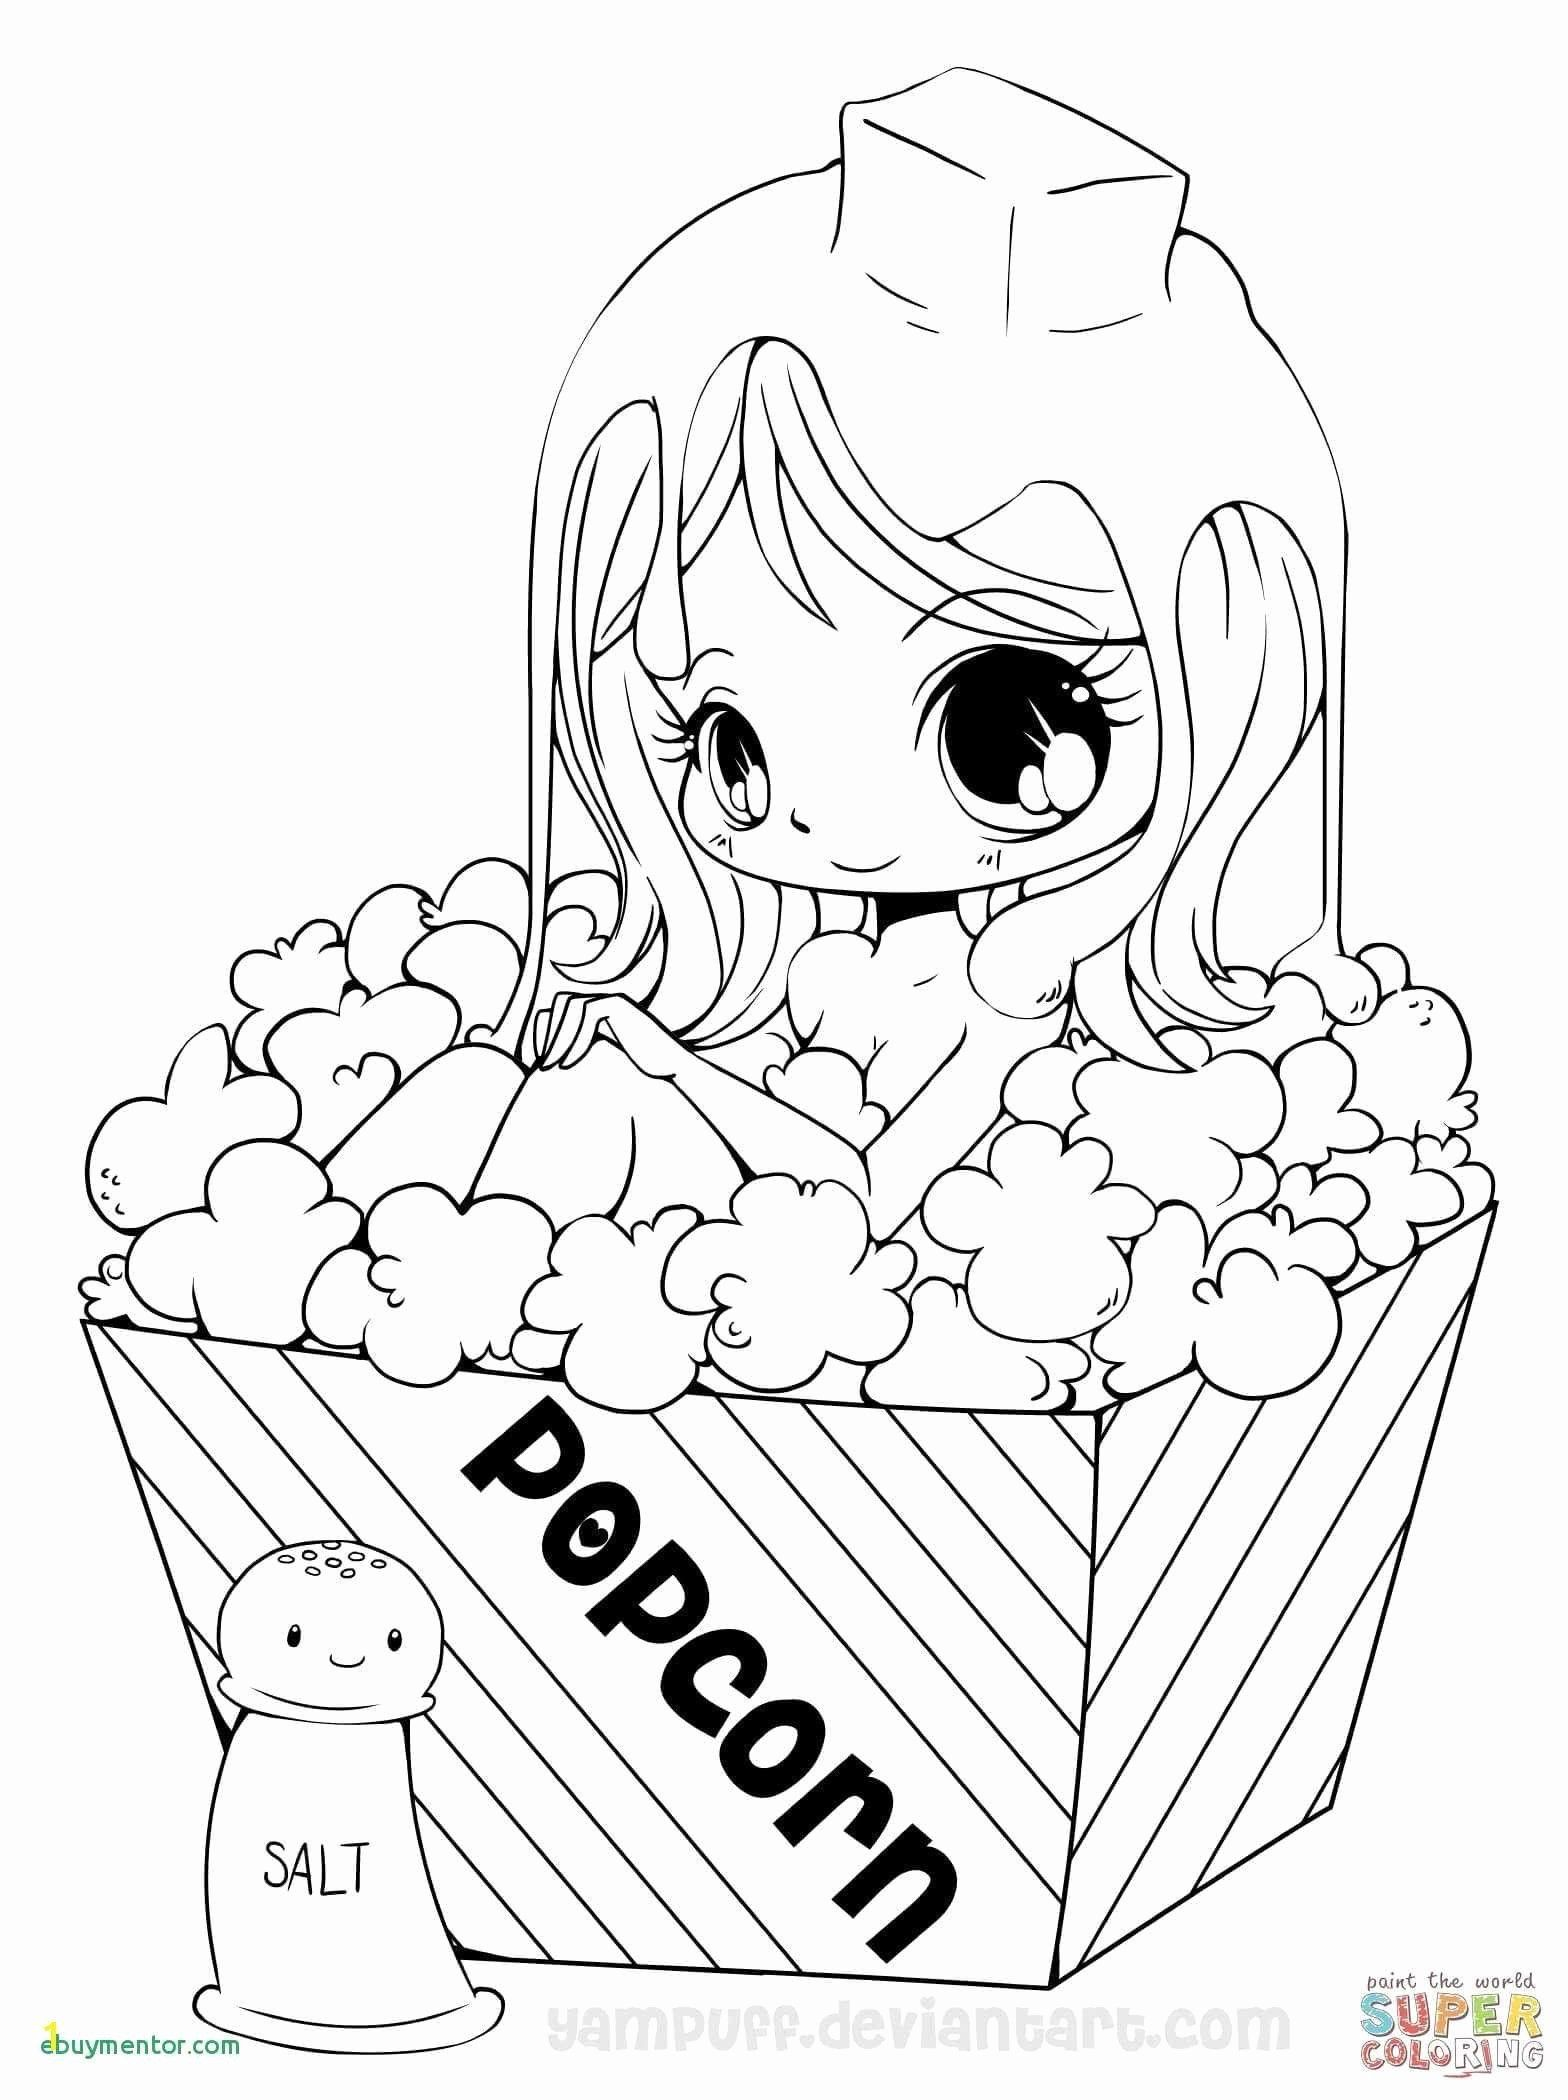 The Art Of Basic Drawing Book In 2020 Cute Coloring Pages Lego